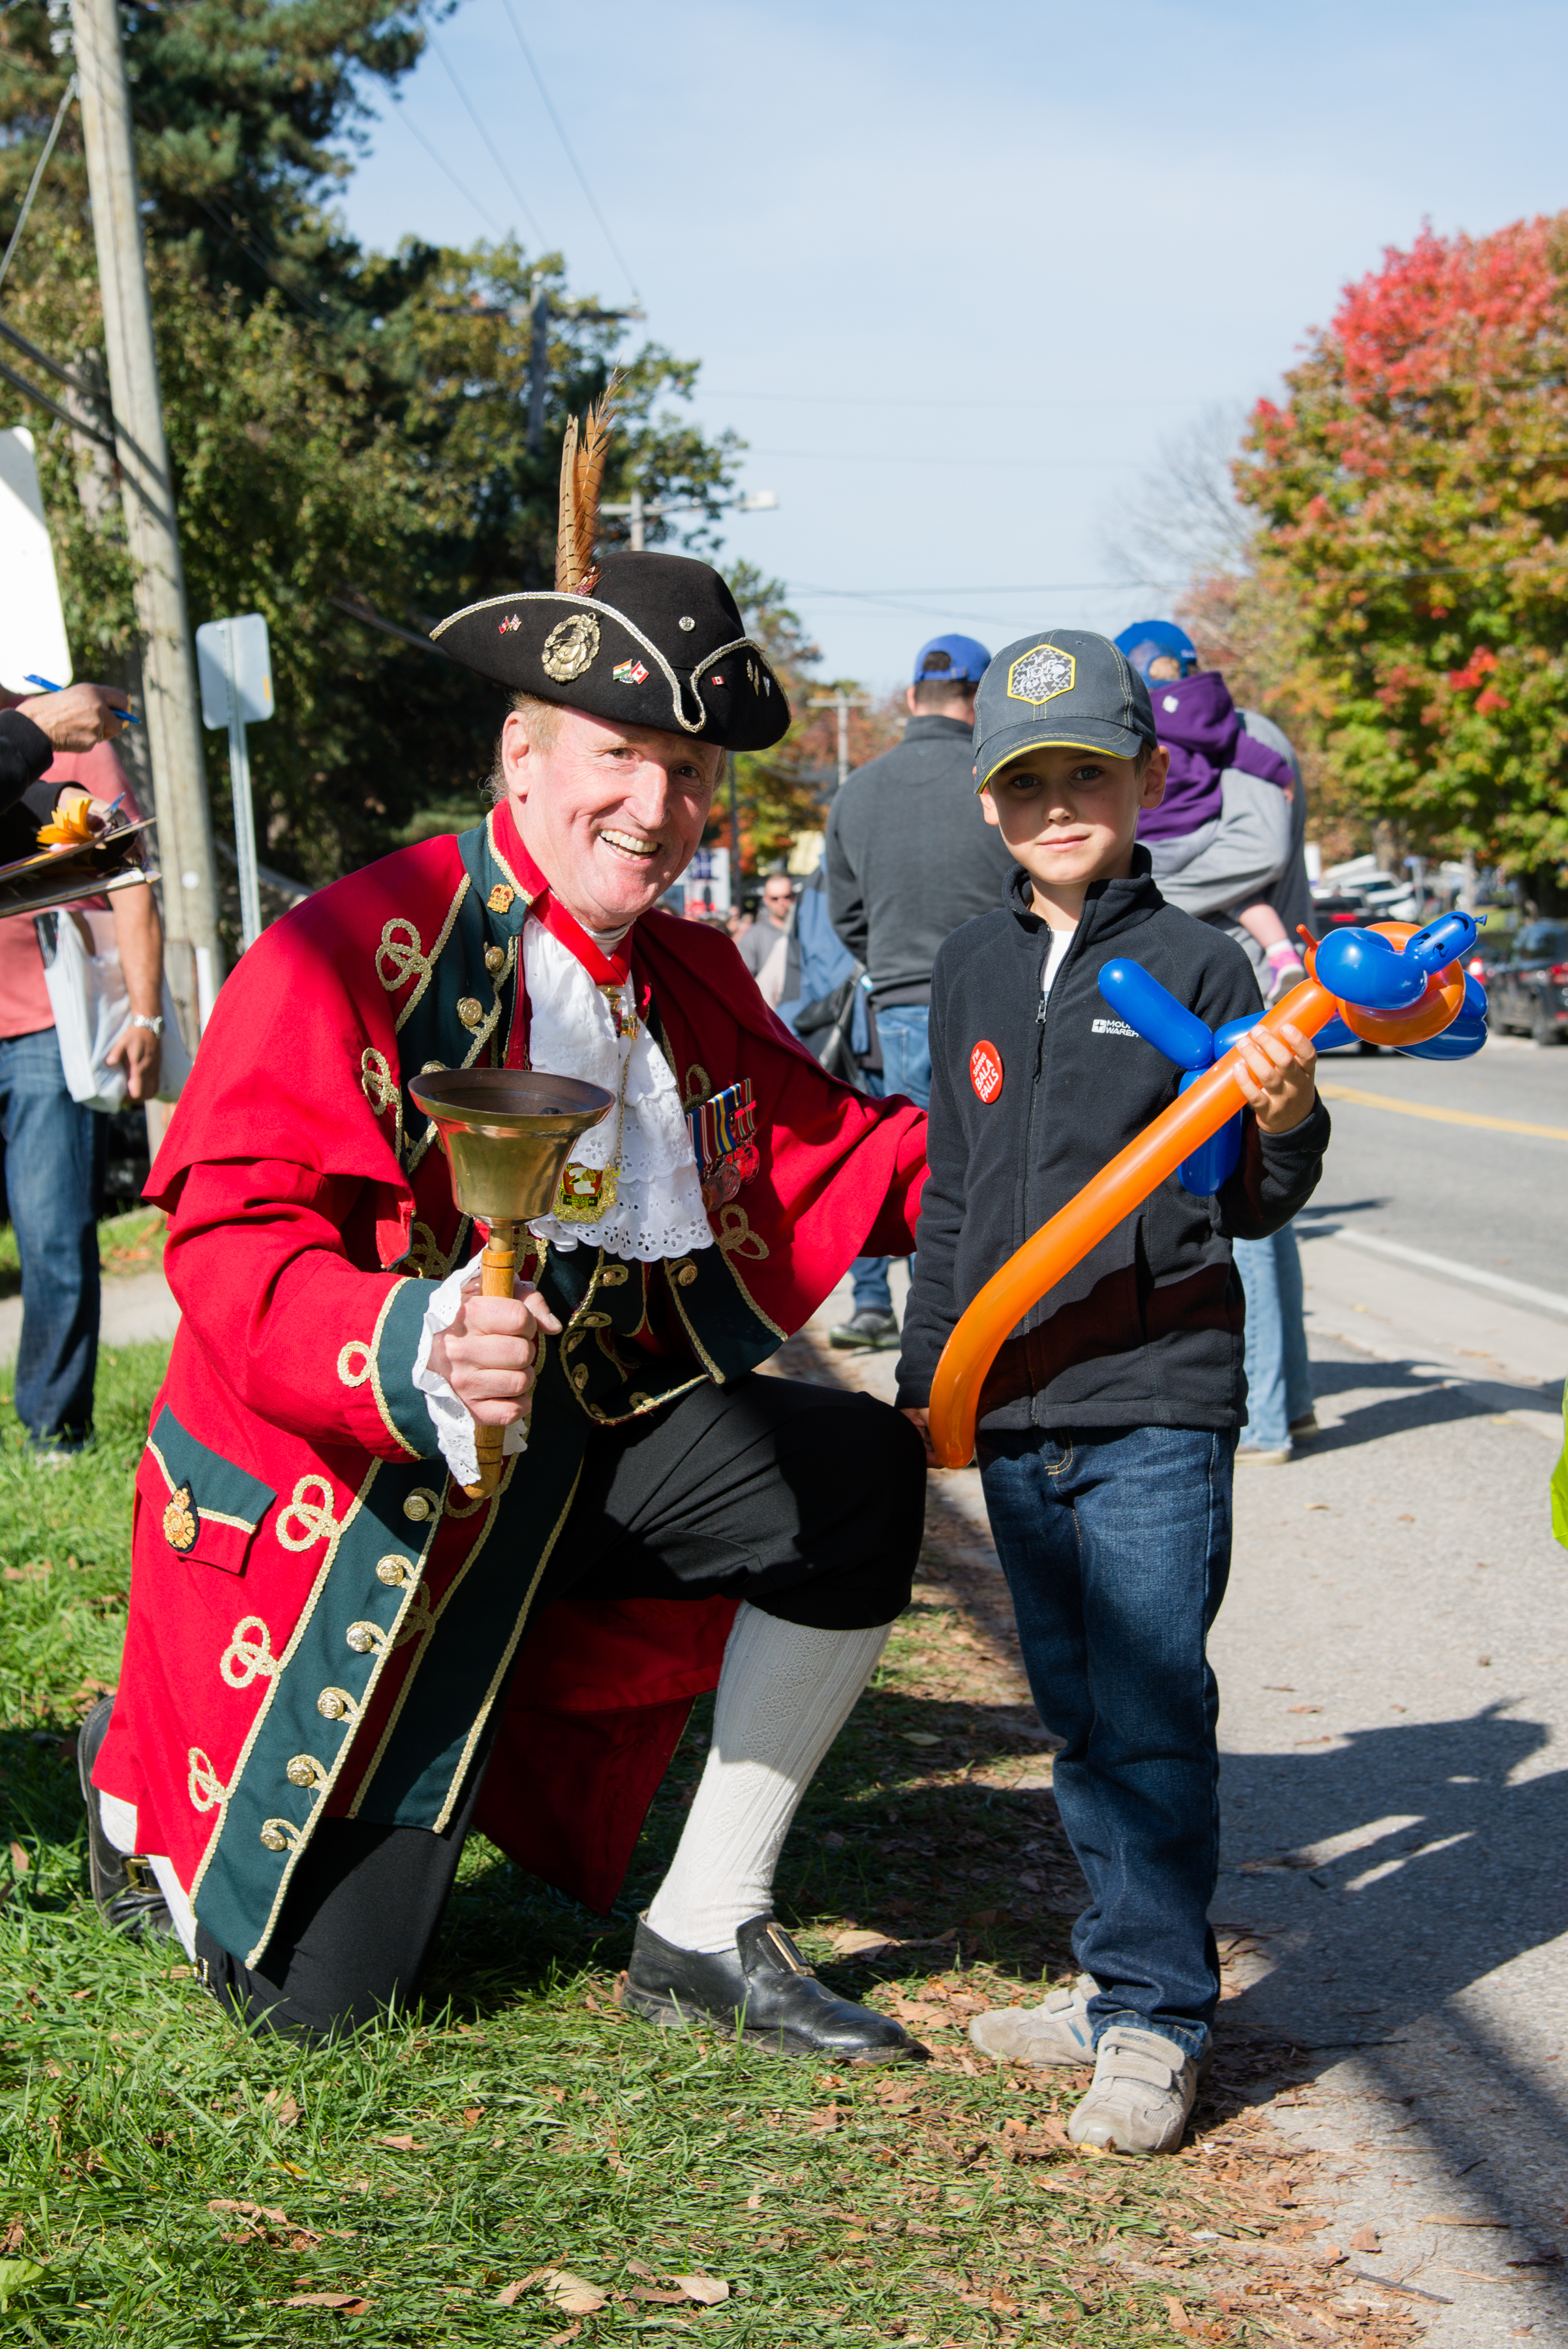 VOLUNTEER NOW!It literally takes a village to make the Bala Cranberry Festival happen. - SINCE 1984, A DEDICATED GROUP OF VOLUNTEERS HAS ENSURED THE BALA CRANBERRY FESTIVAL IS AN EVENT THAT CAN'T BE MISSED. LET'S KEEP THE TRADITION GOING!